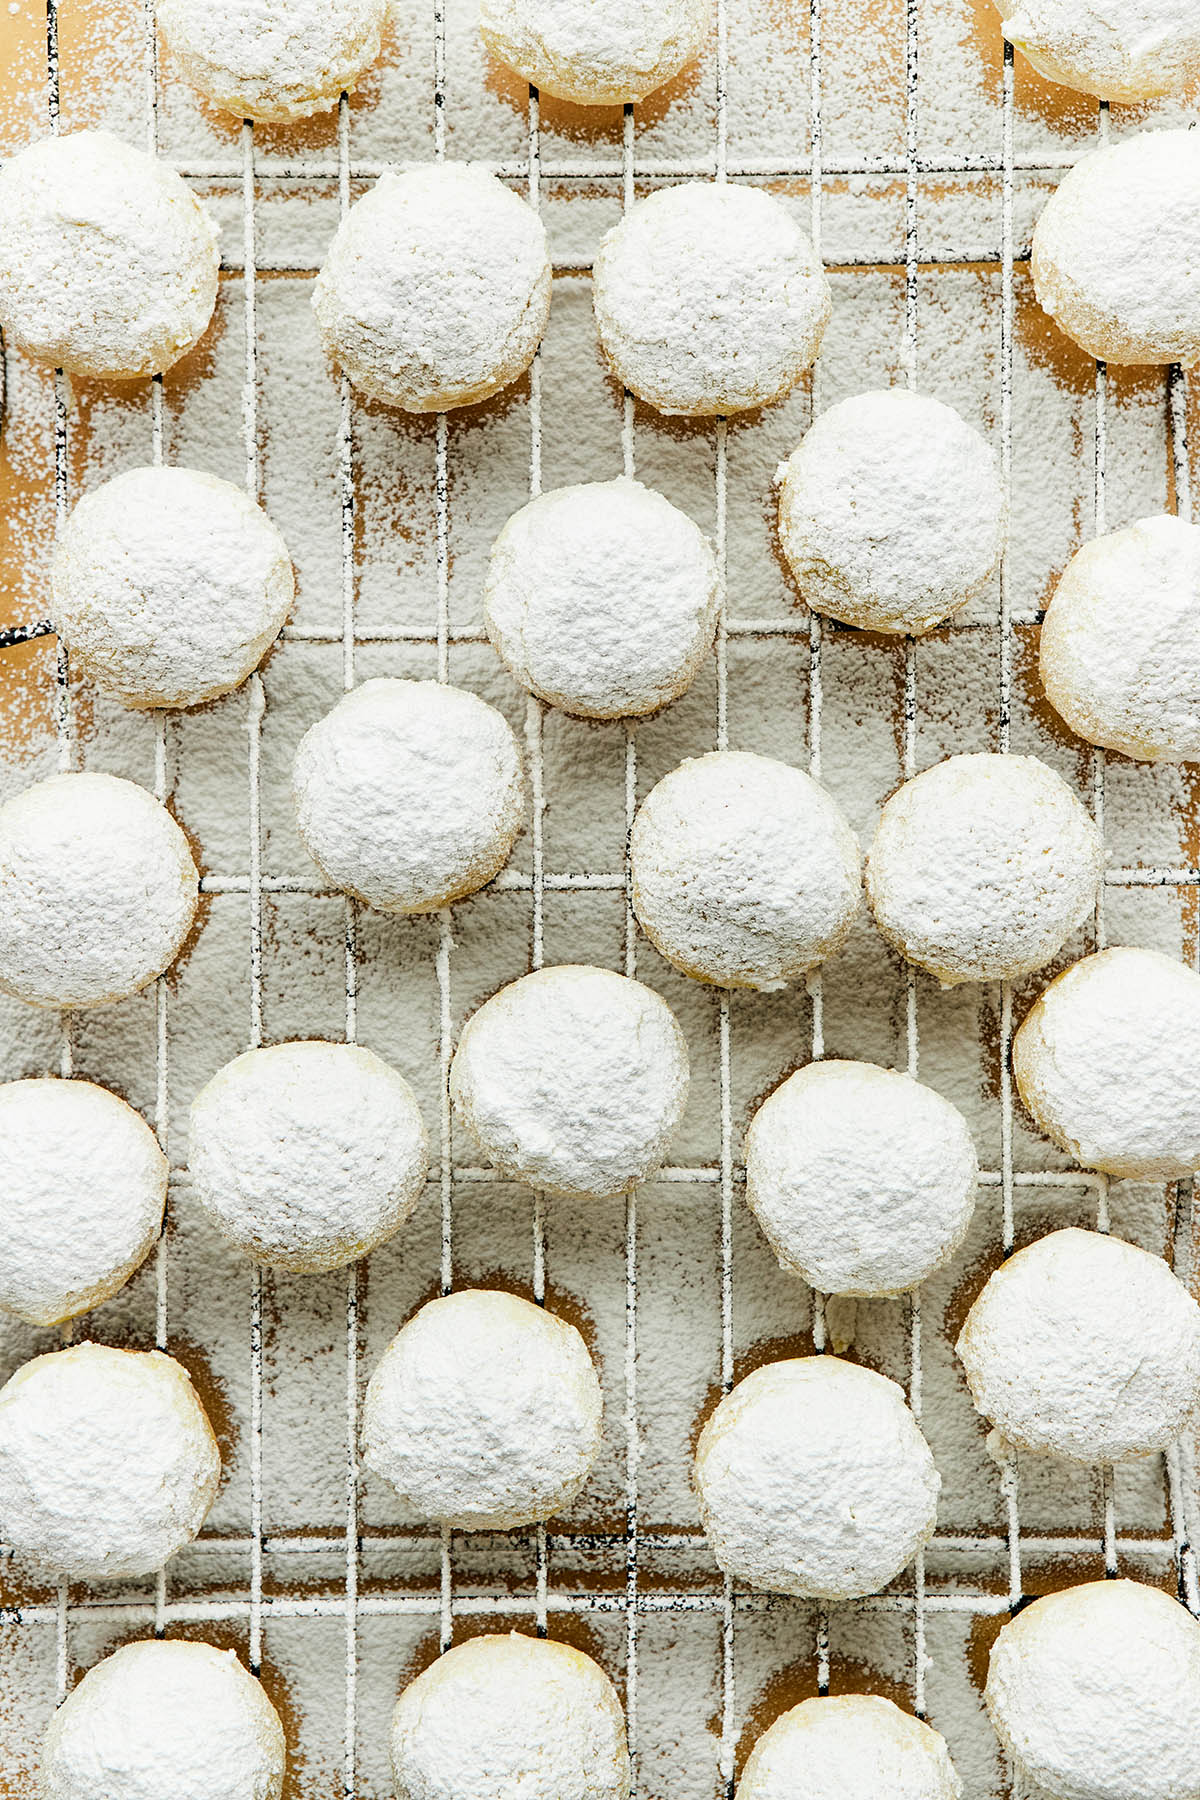 Close up of a tray of Mexican wedding cookies dusted with powdered sugar.